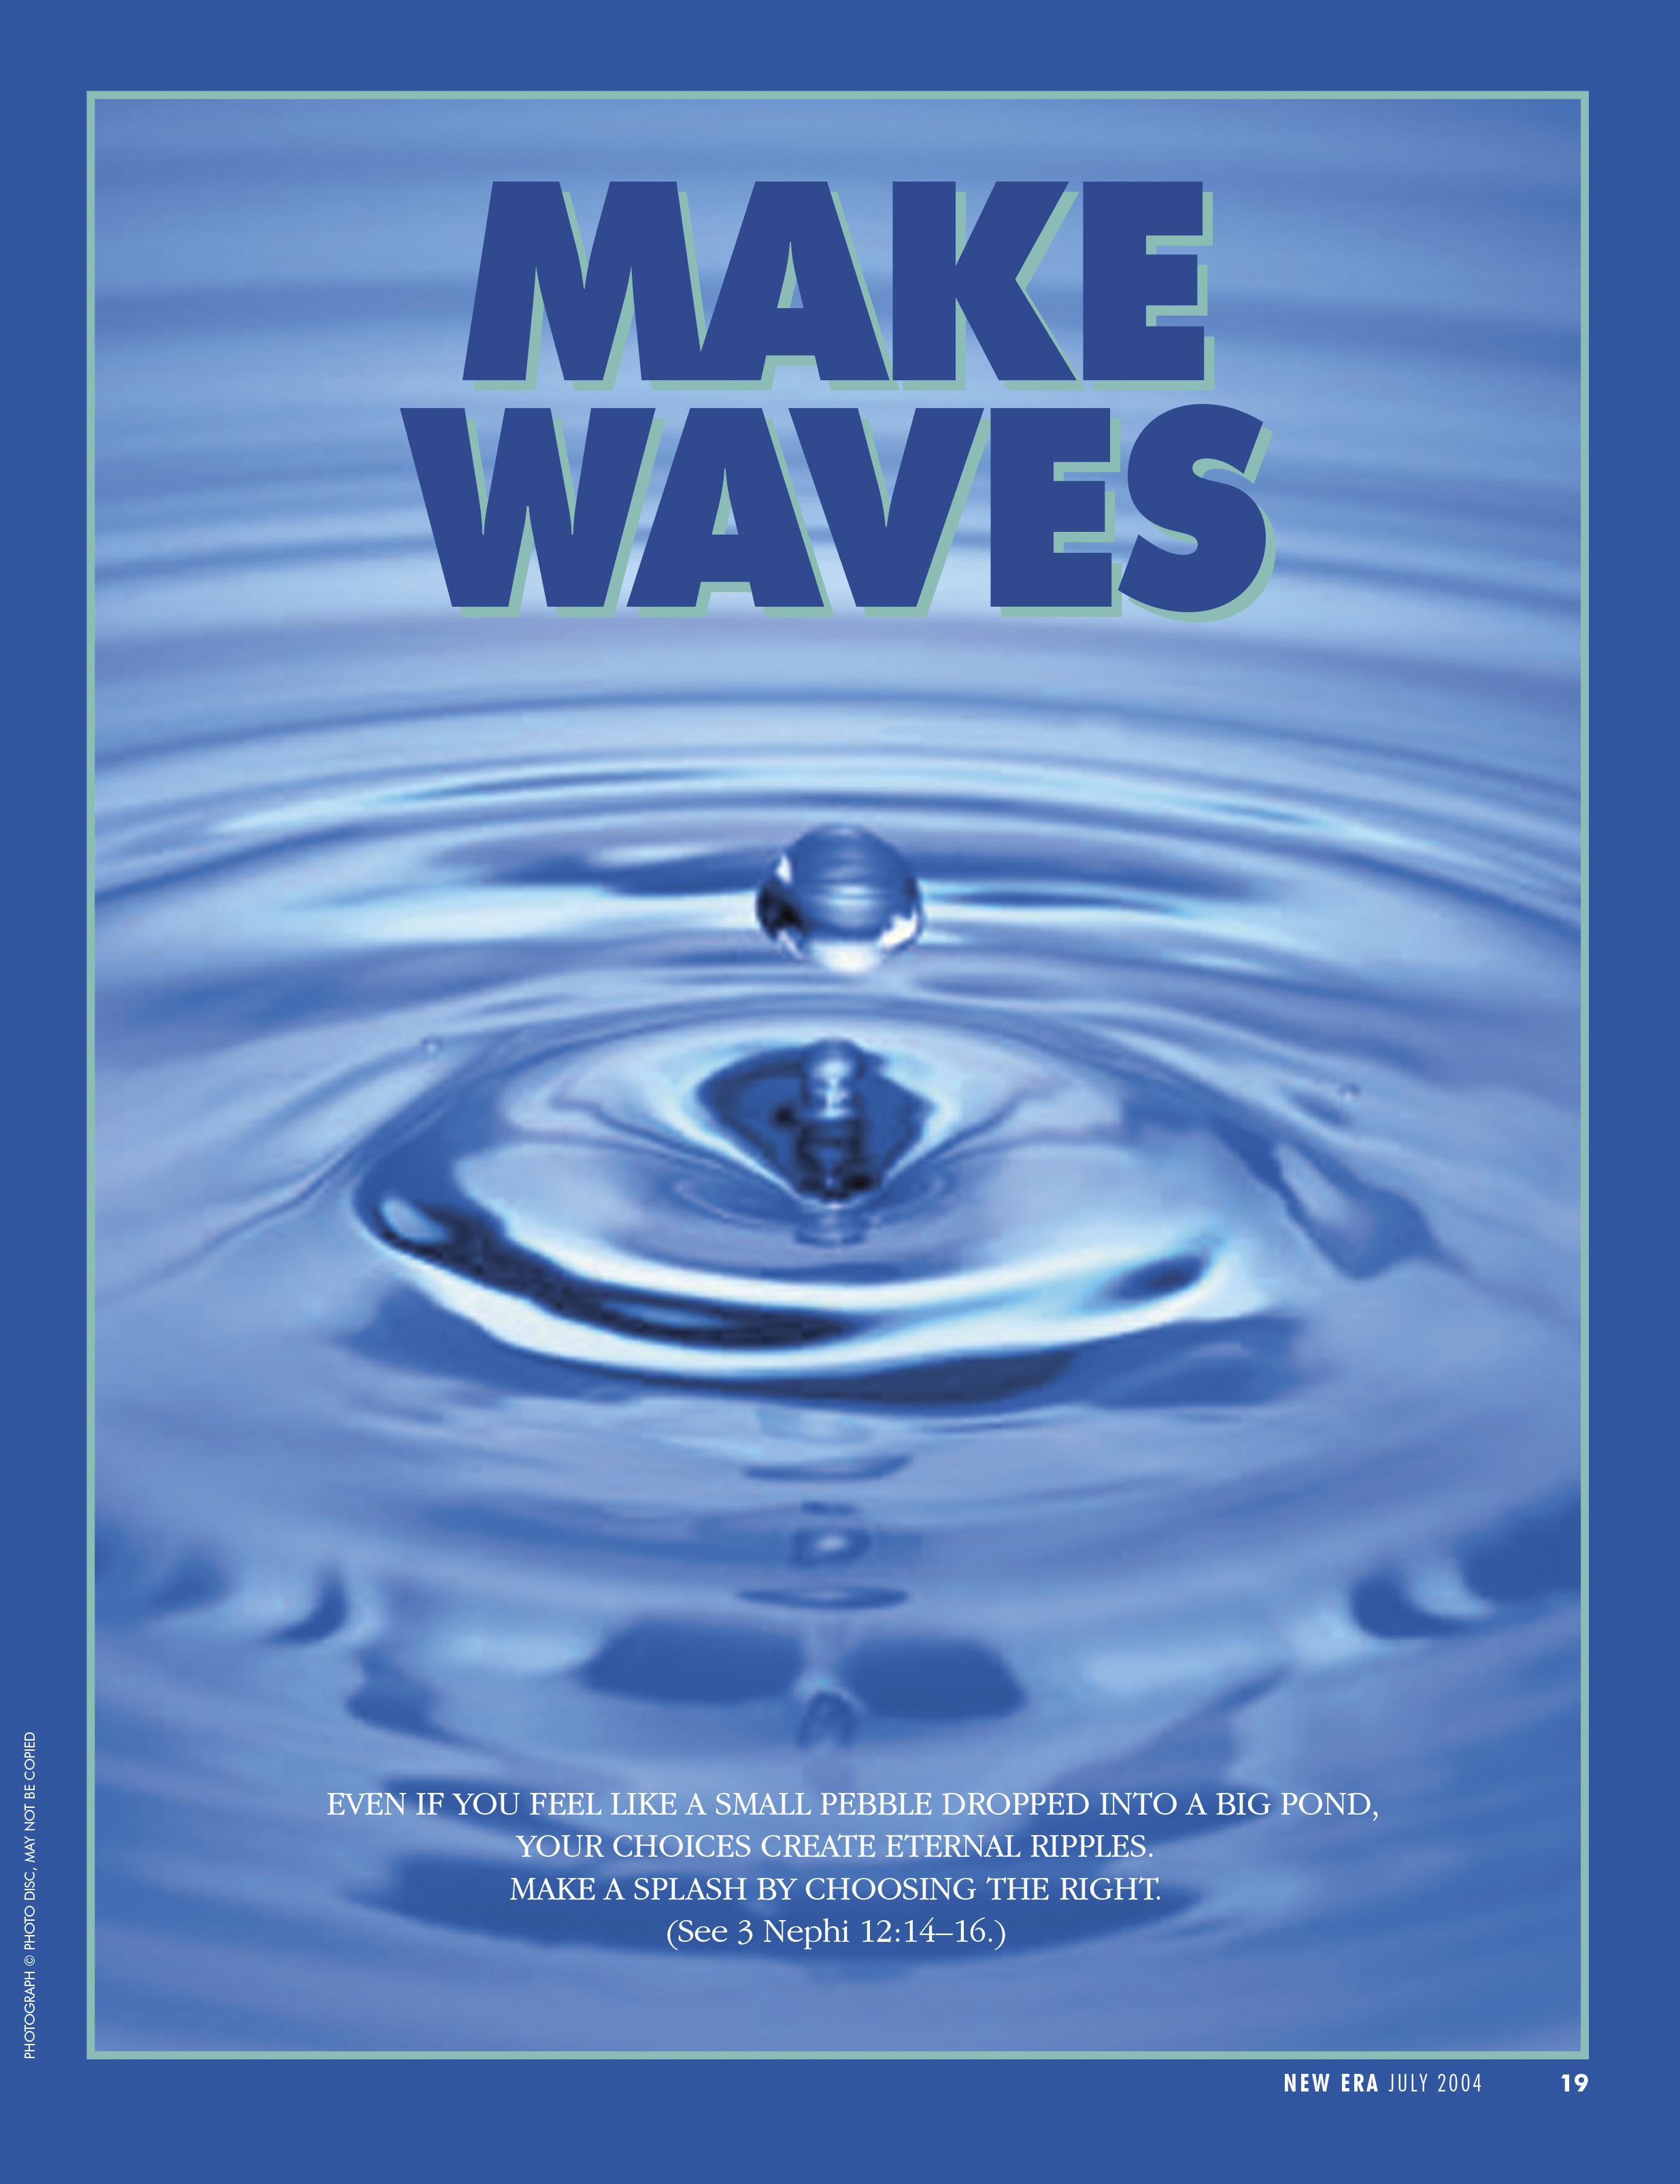 Make Waves. Even if you feel like a small pebble dropped into a big pond, your choices create eternal ripples. Make a splash by choosing the right. (See 3 Nephi 12:14–16.) July 2004 © undefined ipCode 1.